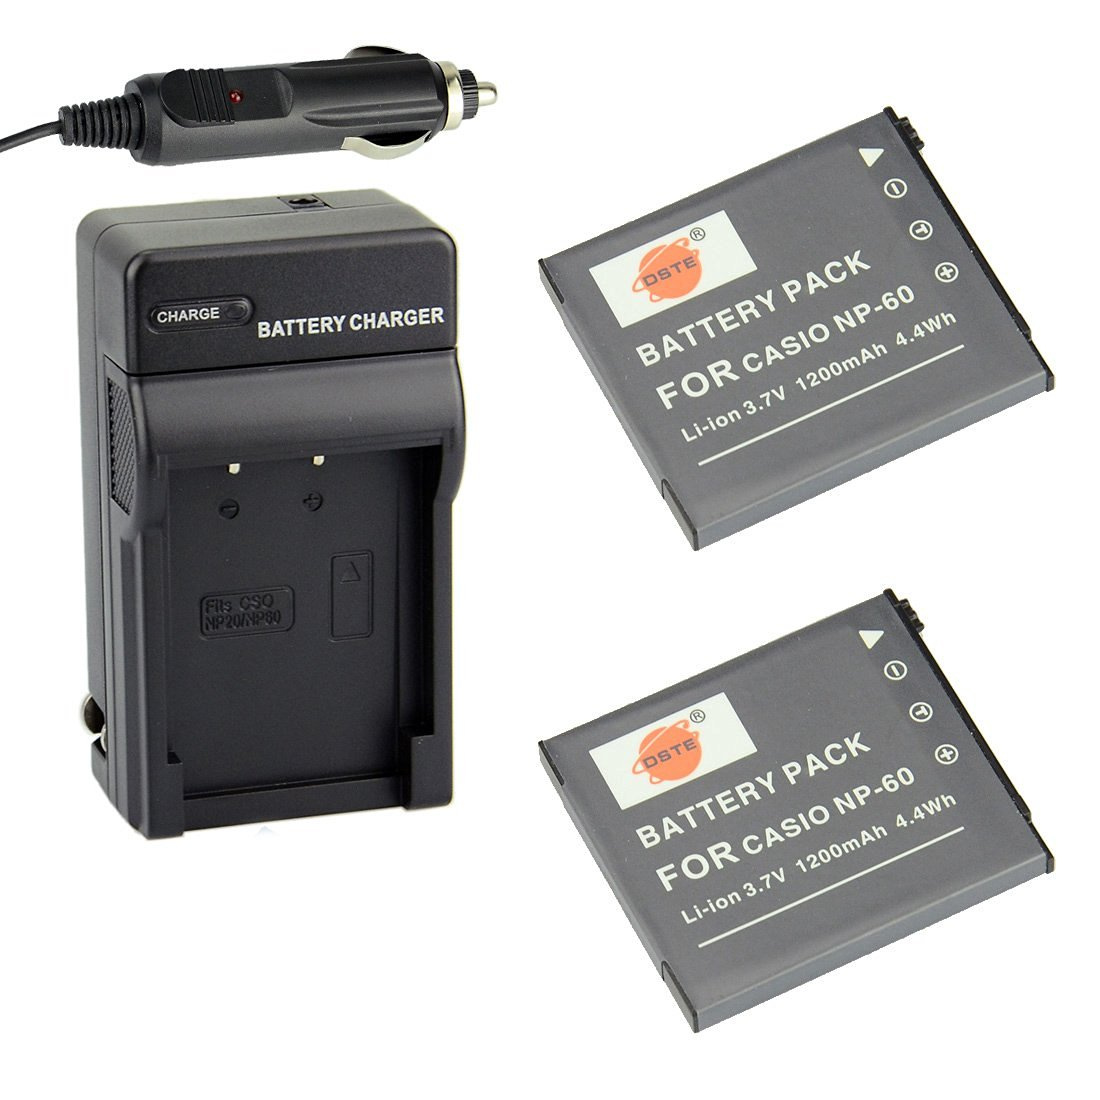 DSTE® 2x NP-60 Battery + DC75 Travel and Car Charger Adapter for Casio Exilim EX-FS10 EX-S10 EX-S12 EX-Z9 EX-Z19 EX-Z20 EX-Z21 EX-Z25 EX-Z29 EX-Z80 EX-Z85 EX-Z90 Digital Cameras